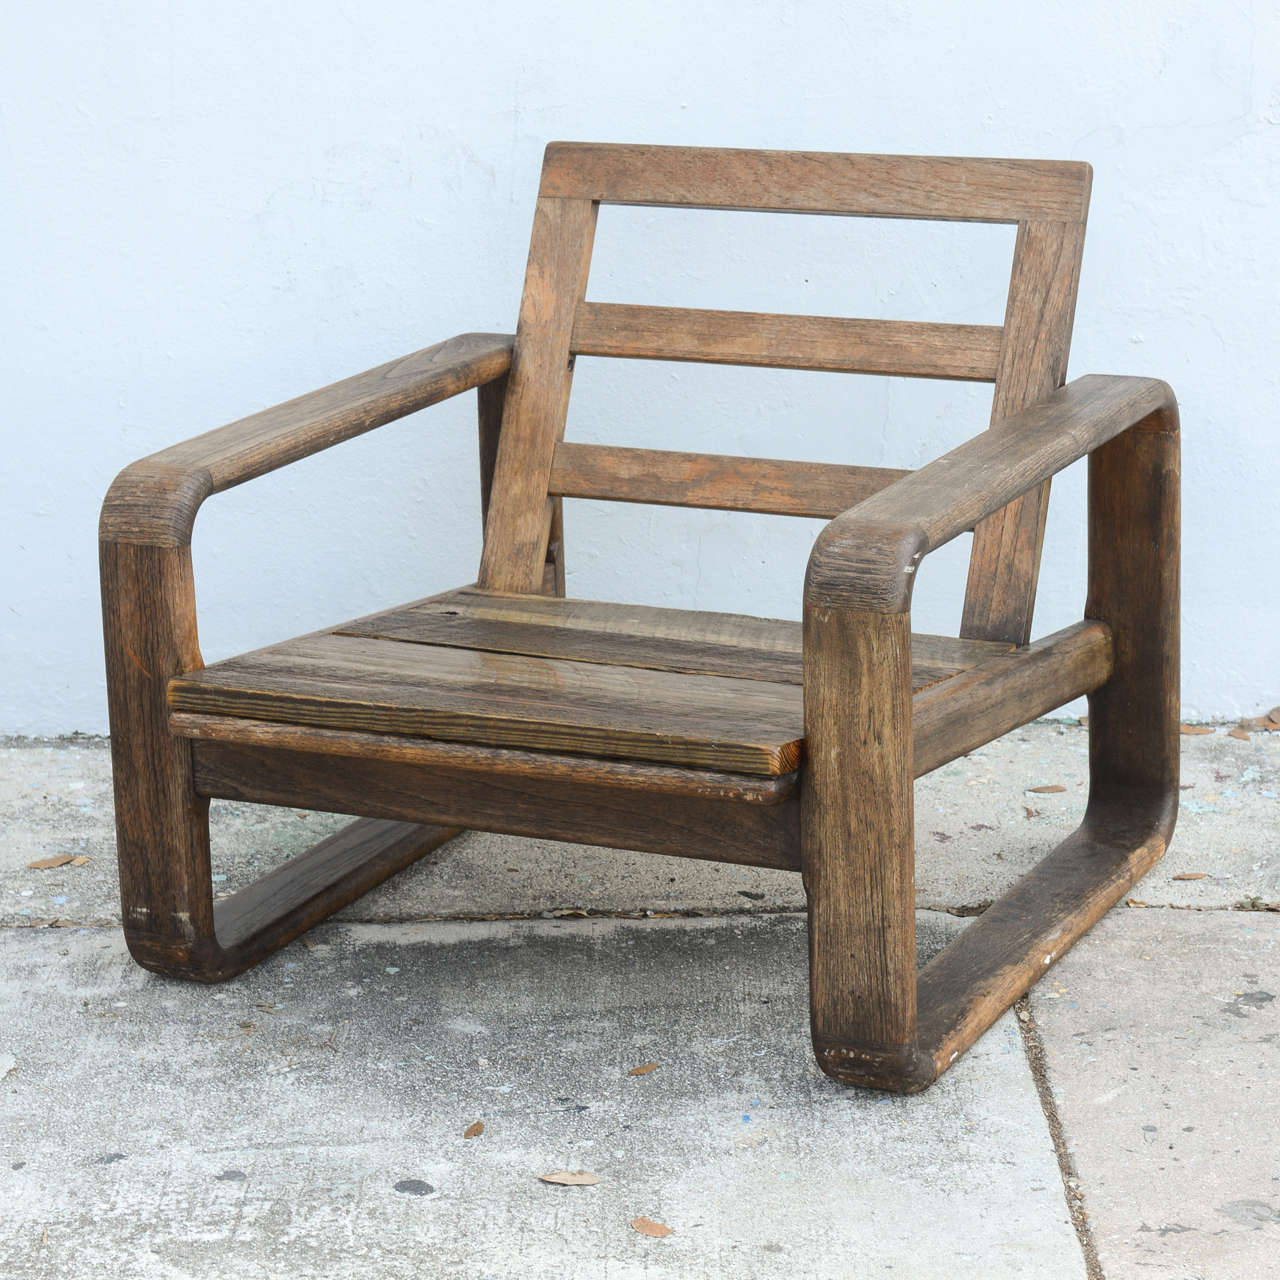 Vintage teak and reclaimed wood chairs s usa at stdibs